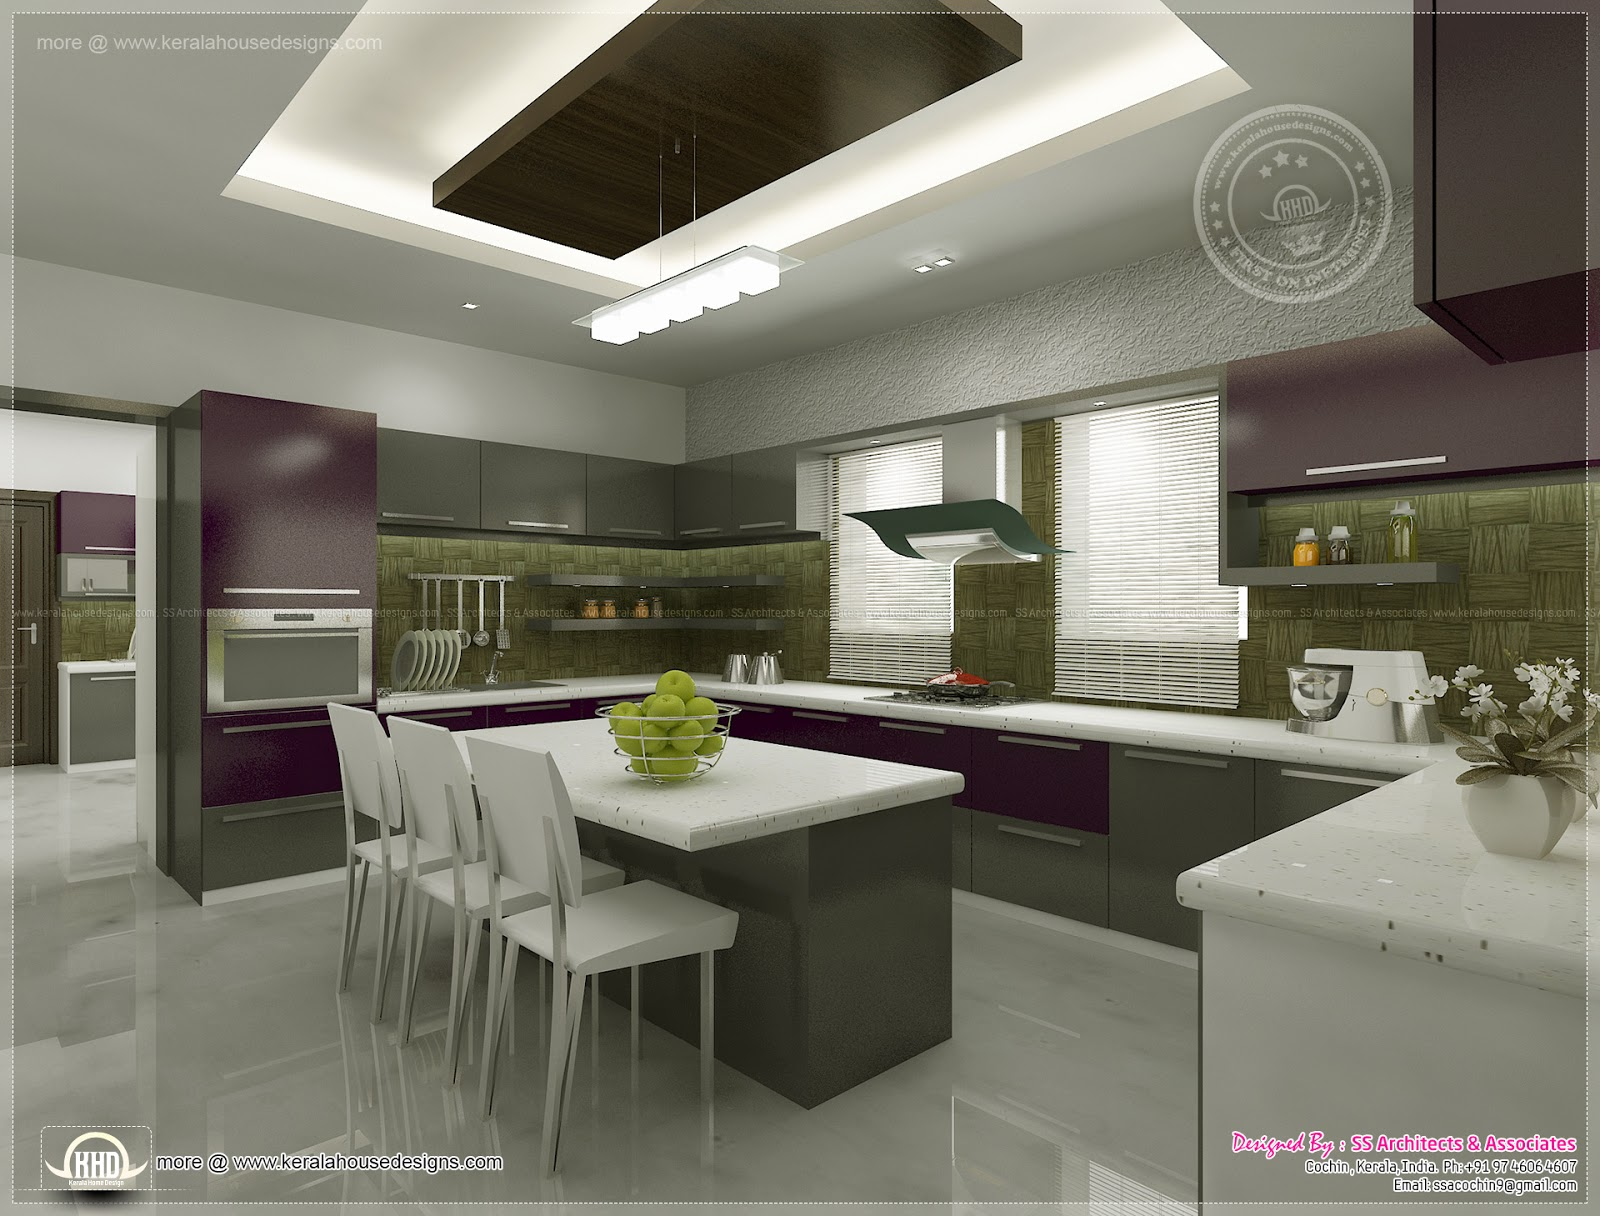 Kitchen interior views by ss architects cochin kerala for House in design